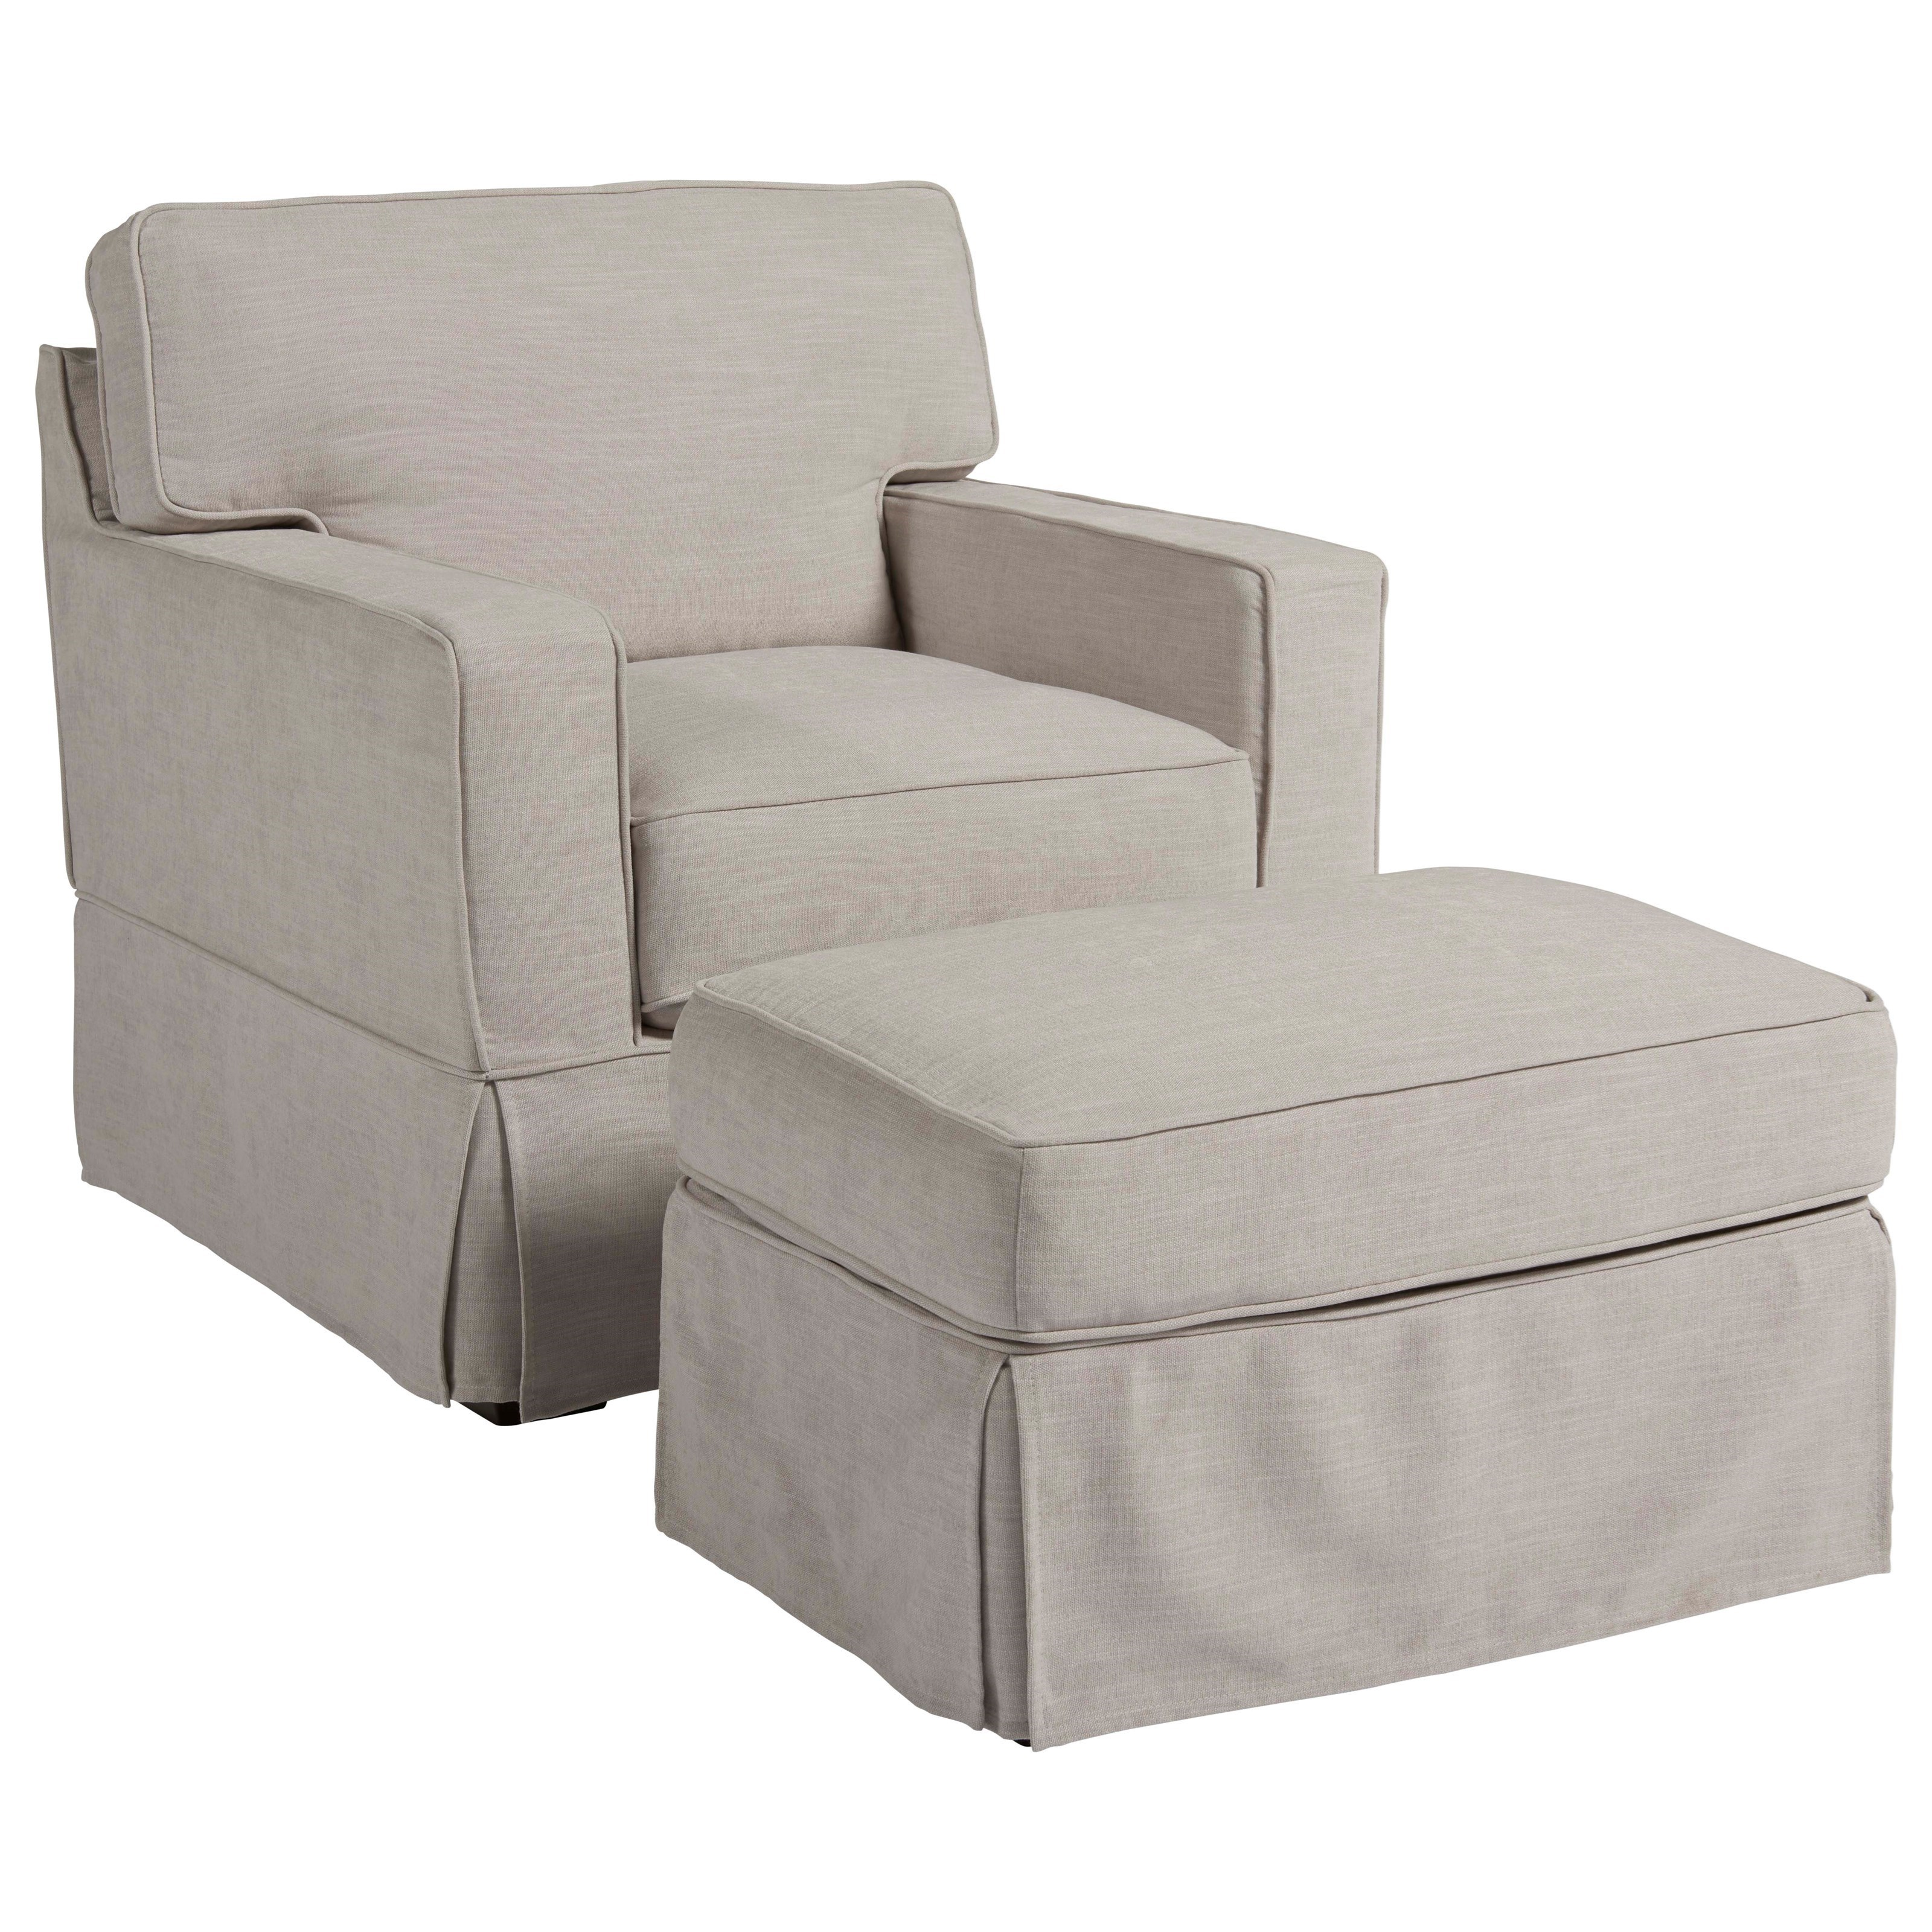 Coastal Living Home - Escape Chatham Chair and Ottoman by Universal at Baer's Furniture